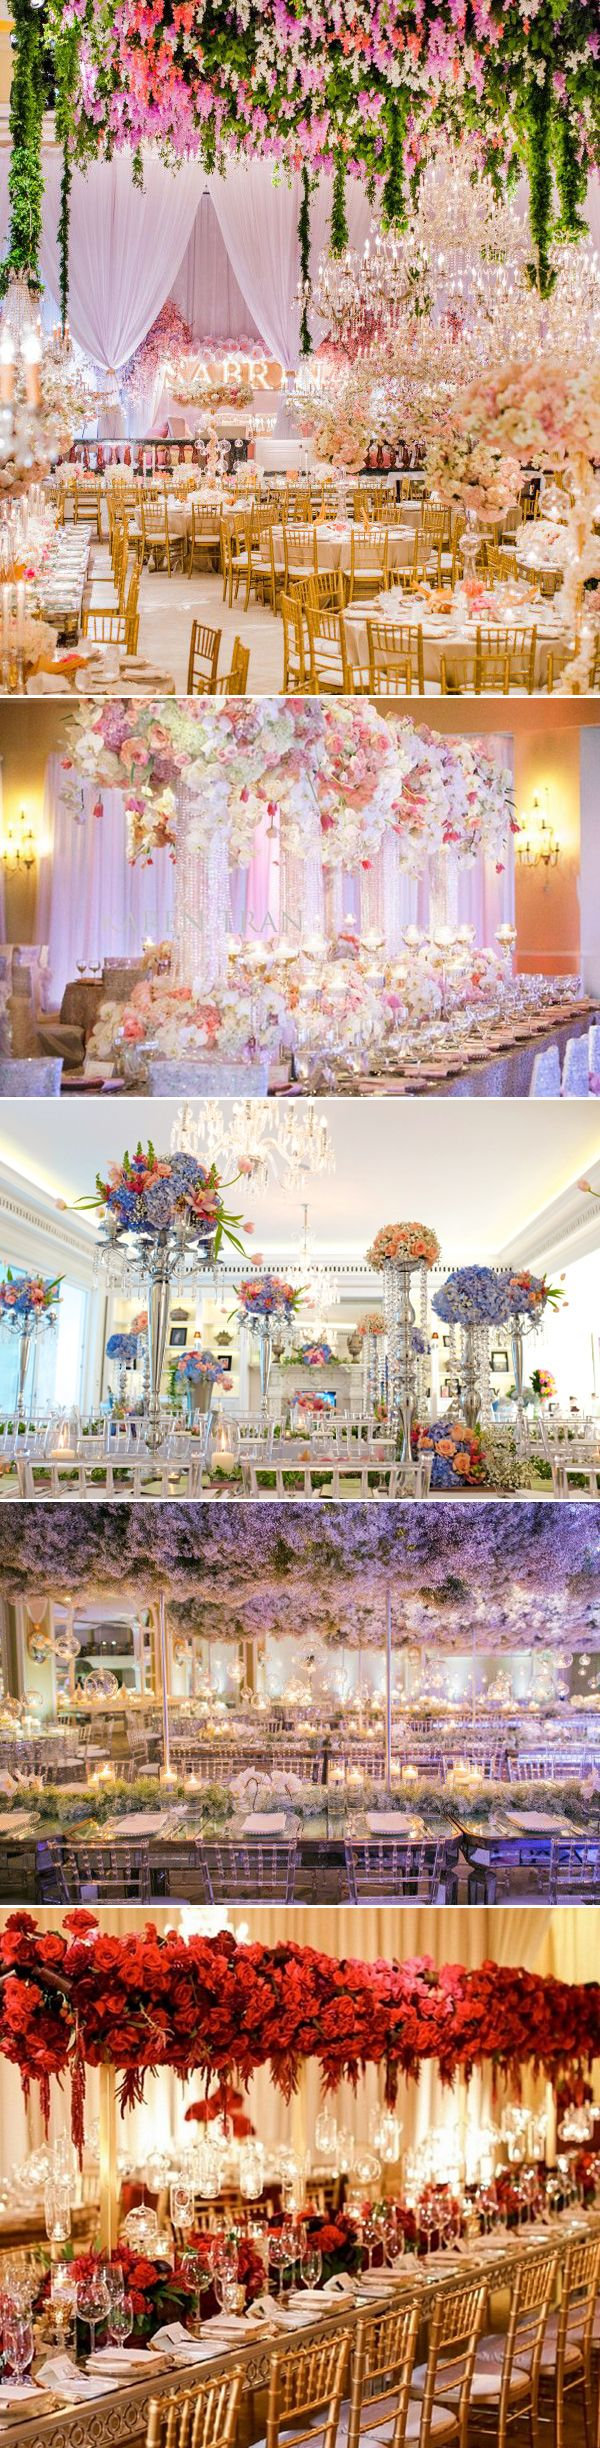 Best 25 Indoor Wedding Receptions Ideas On Pinterest Indoor - indoor garden wedding design ideas